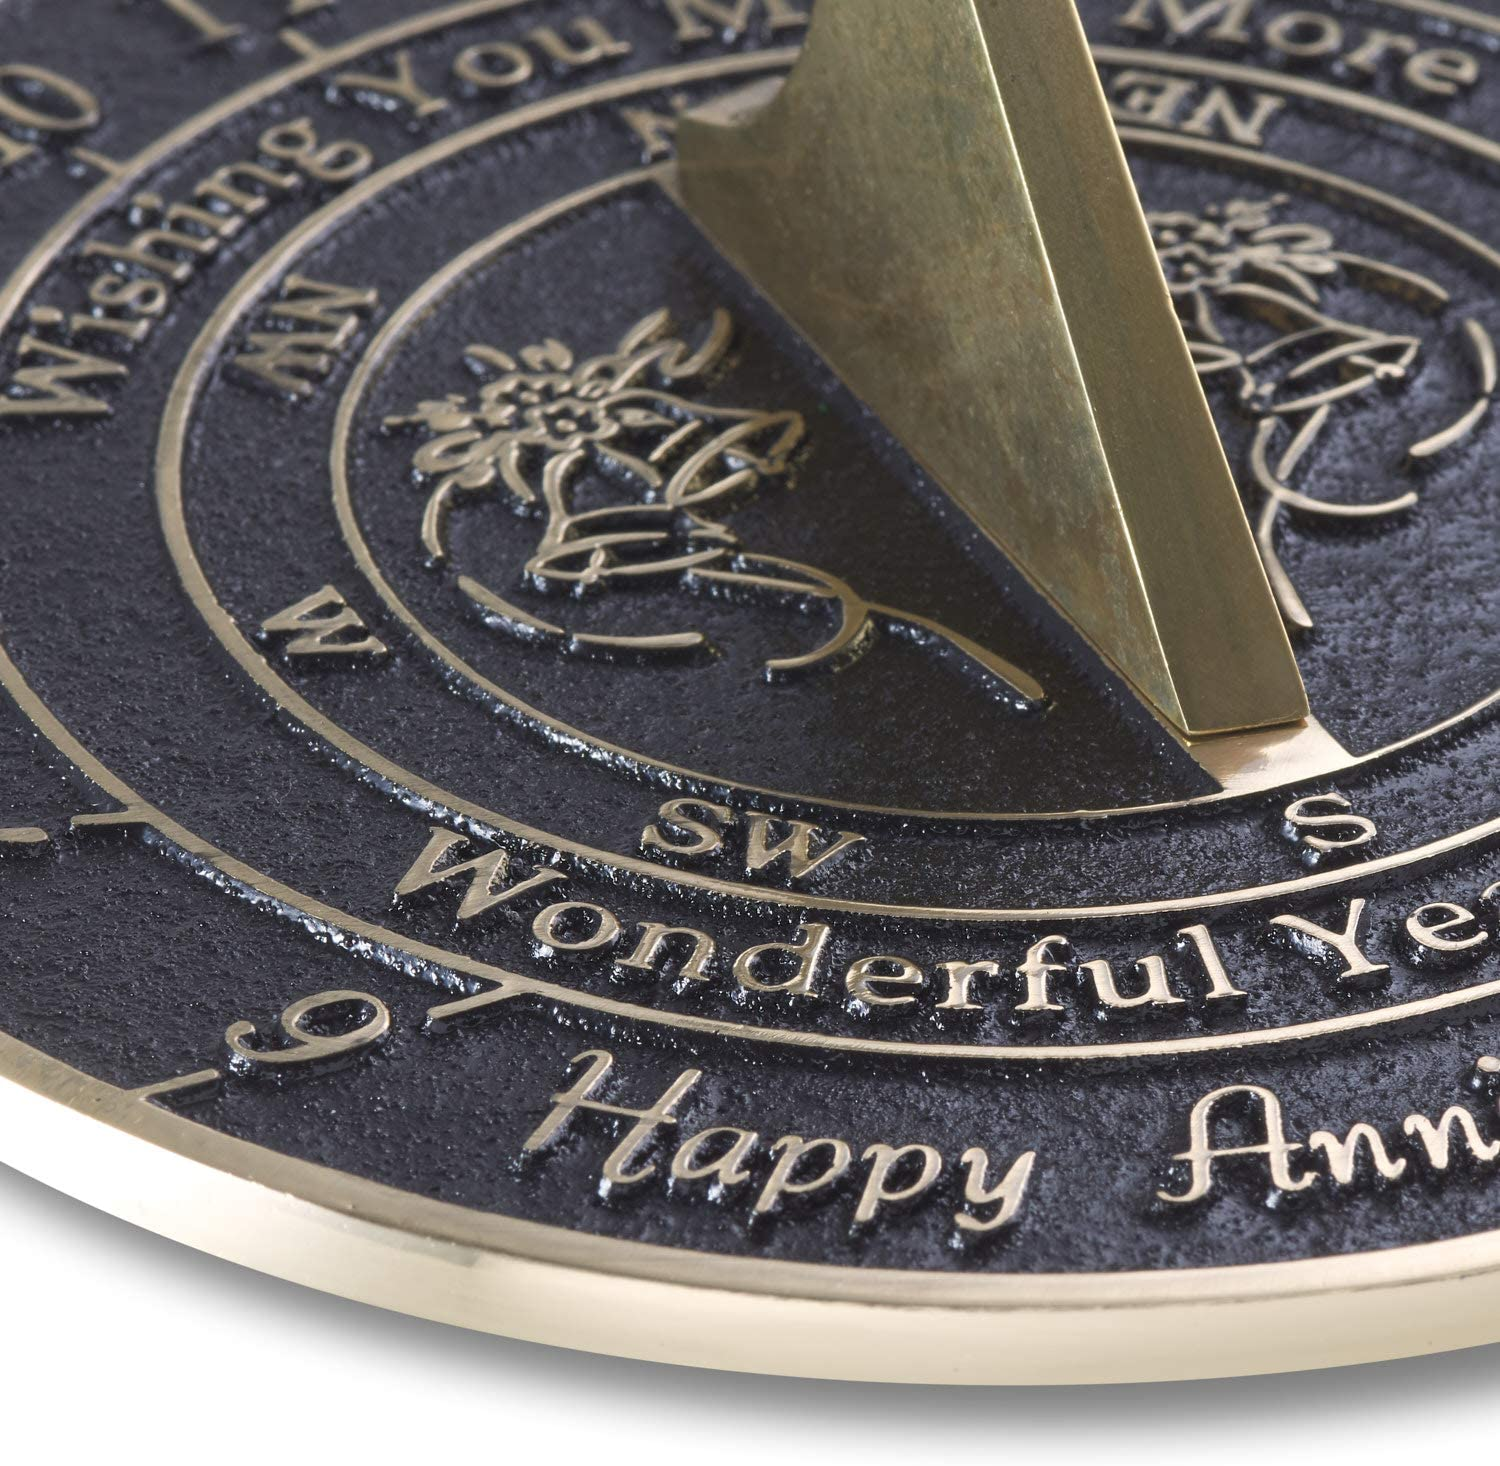 Her Solid Recycled Brass Gift Idea Is A Great Present For Him The Metal Foundry /'Wonderful Years/' 2021 Wedding Anniversary Sundial Gift Grandparents Or Couple On Any Year Of Marriage Parents